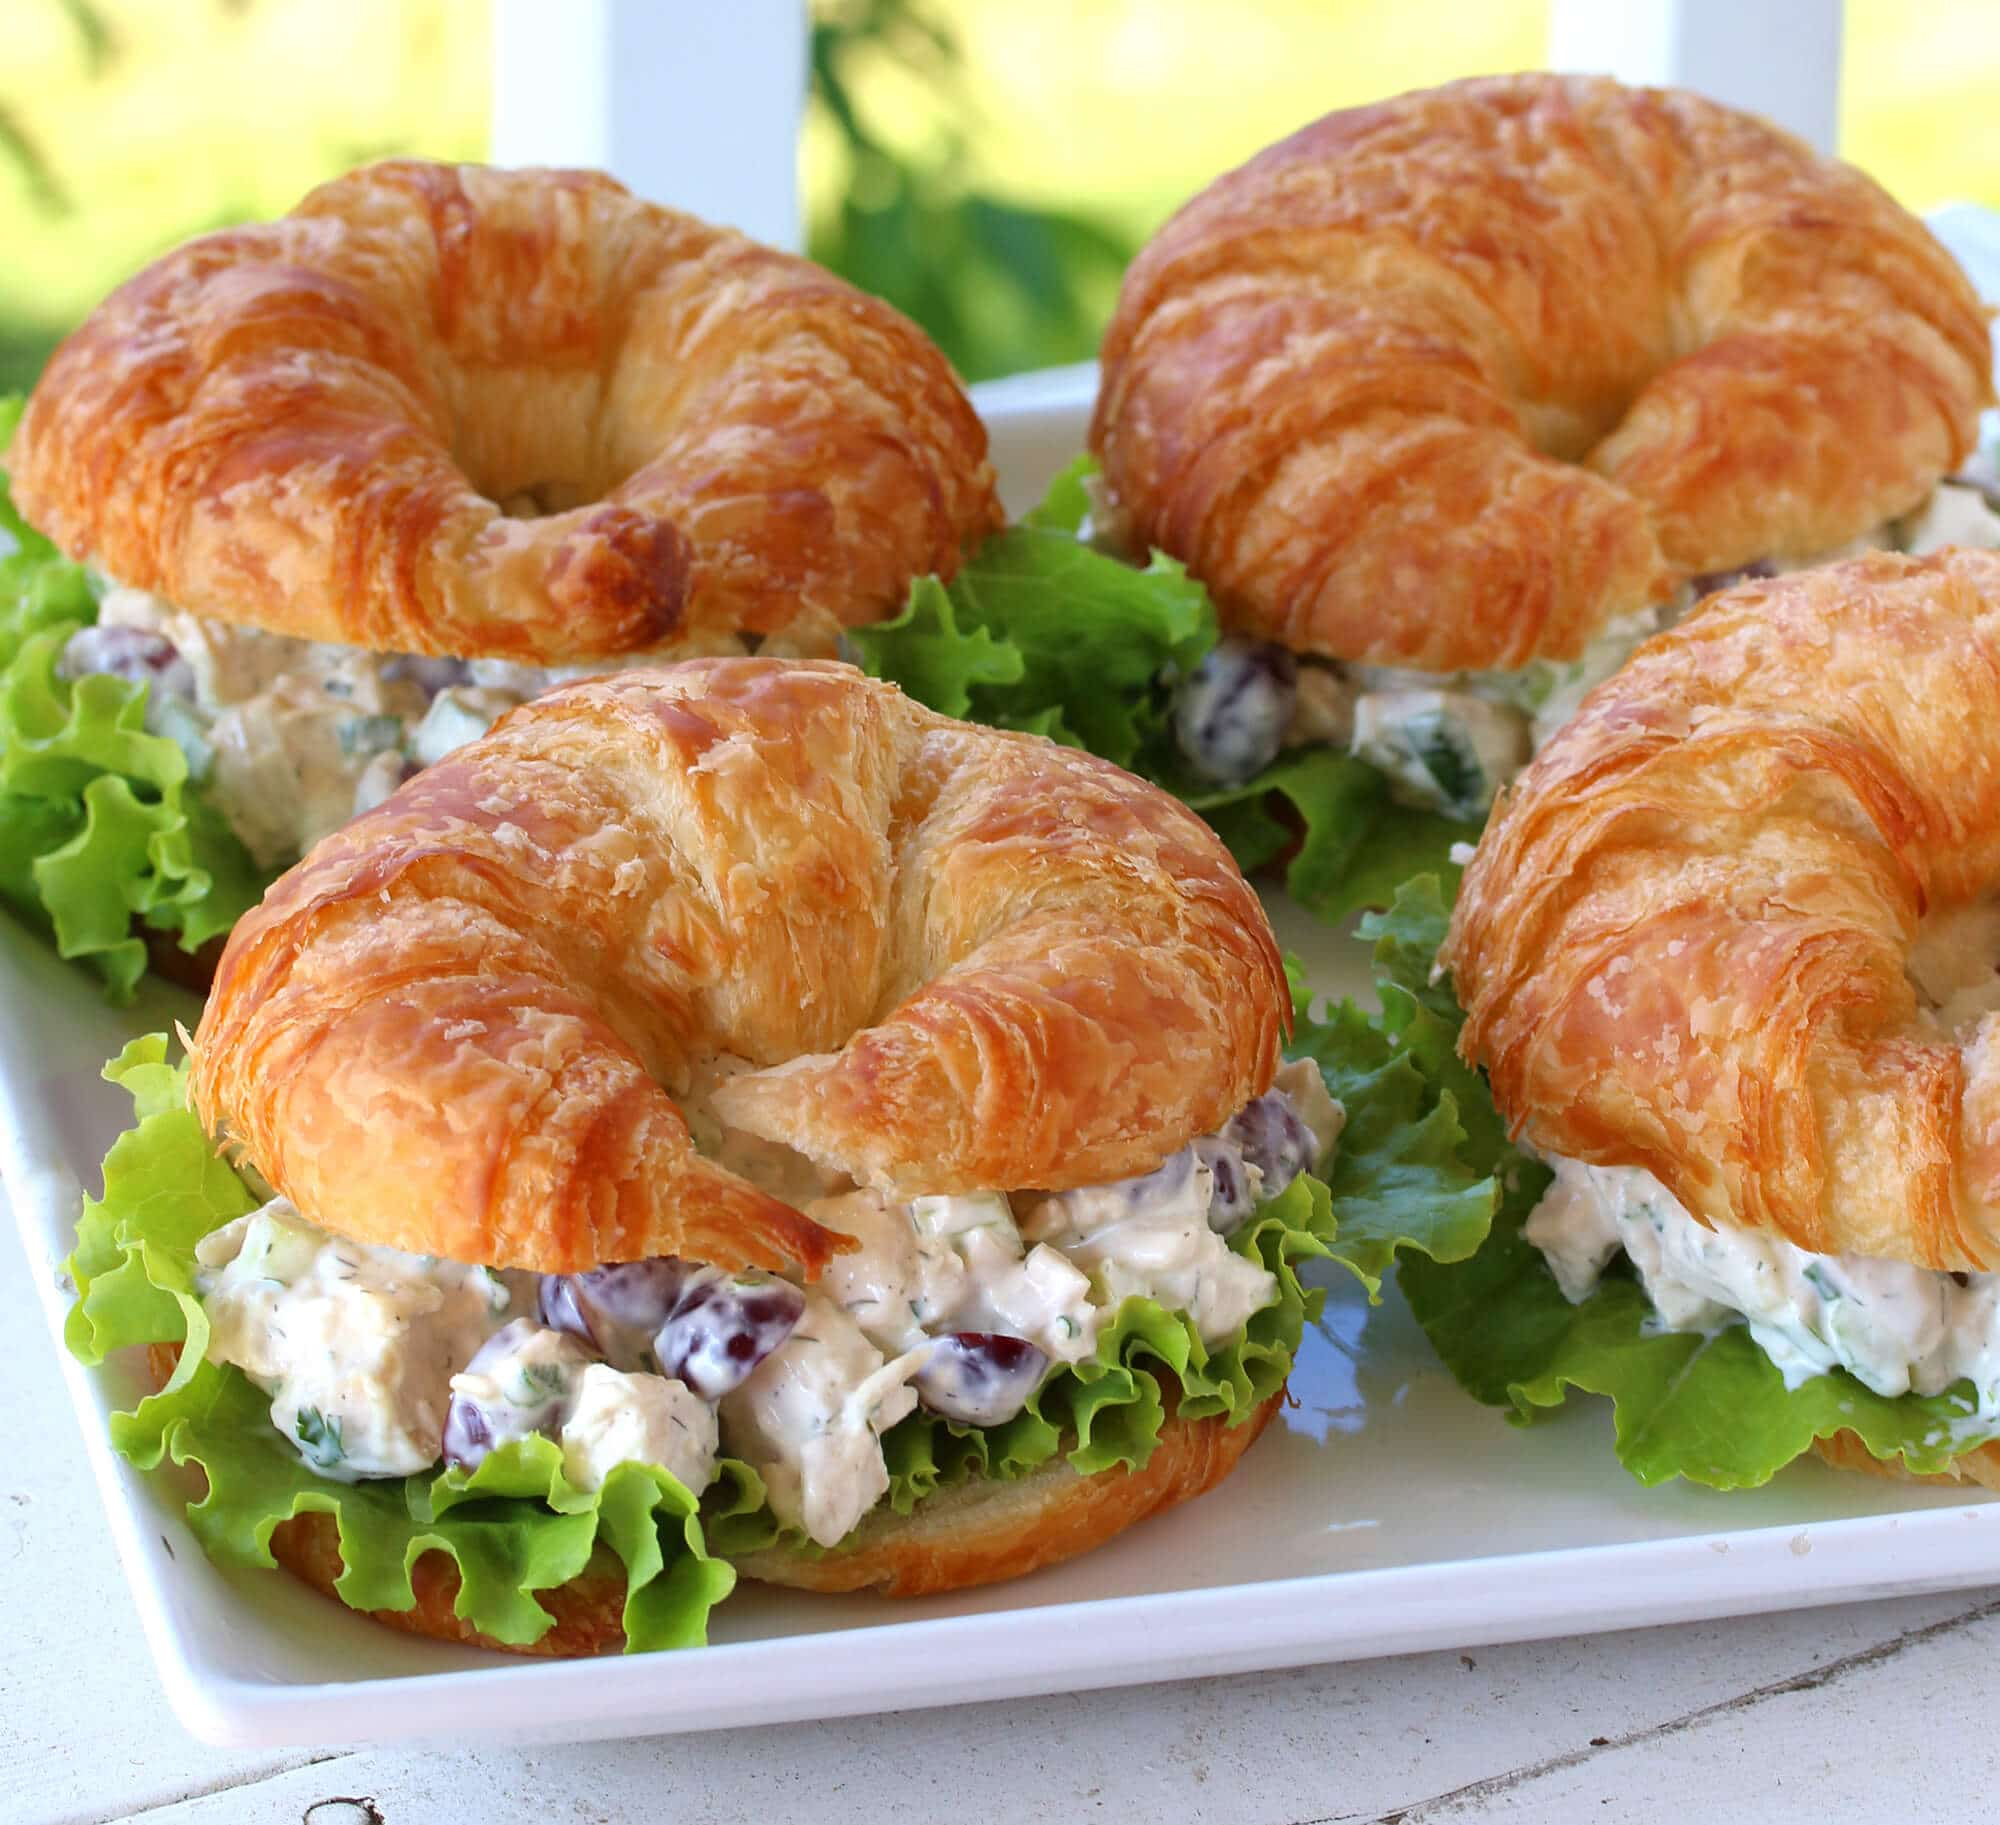 chicken salad recipe best deli style croissants sandwiches